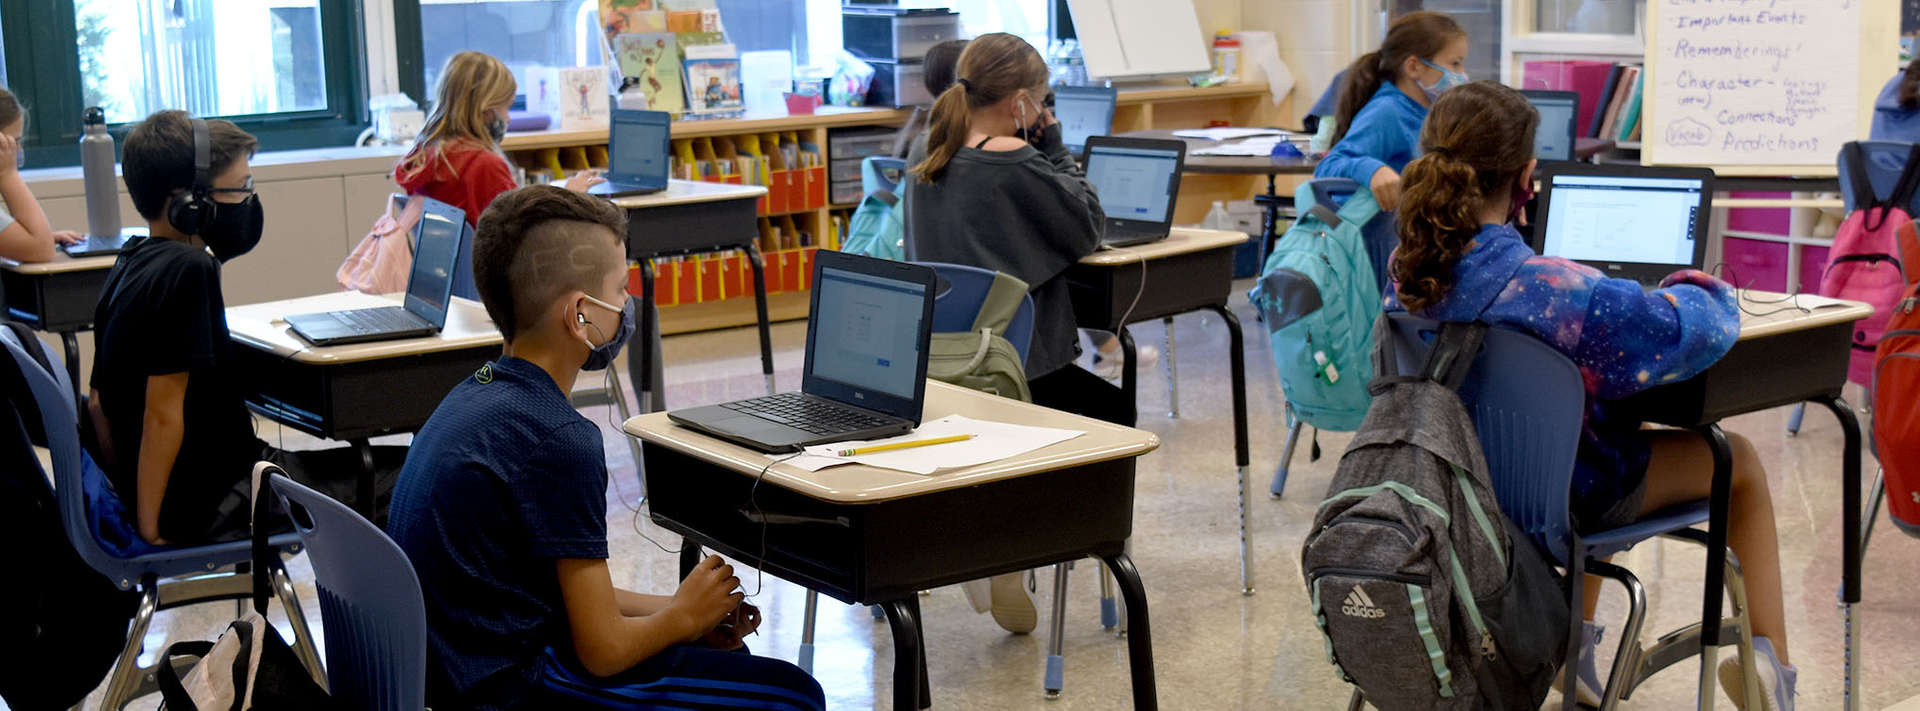 Class working on laptops at their desk.